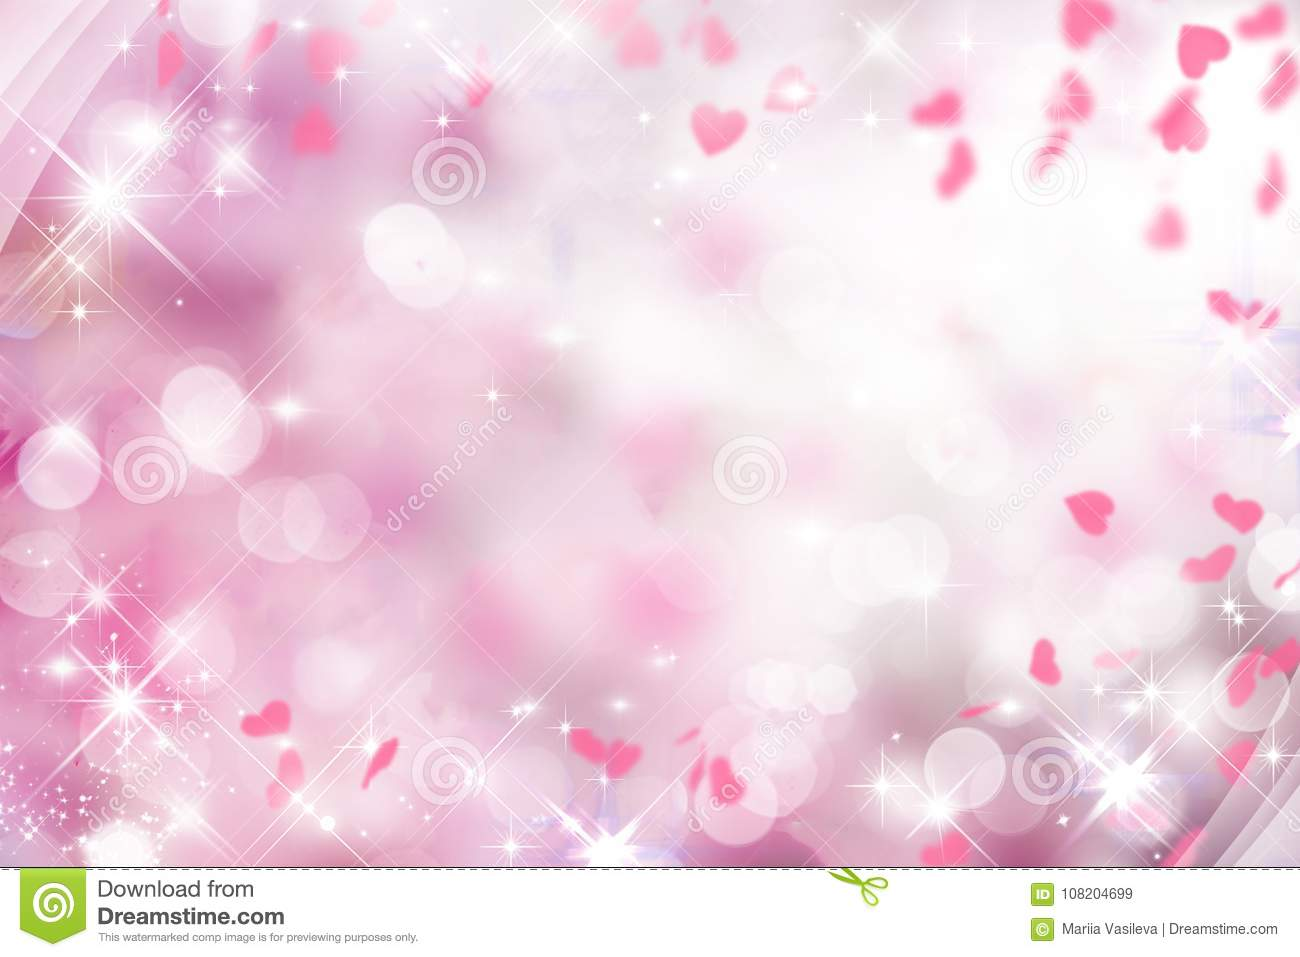 Blurry Purple Background With Pink And White Hearts On Valentines Day Wedding